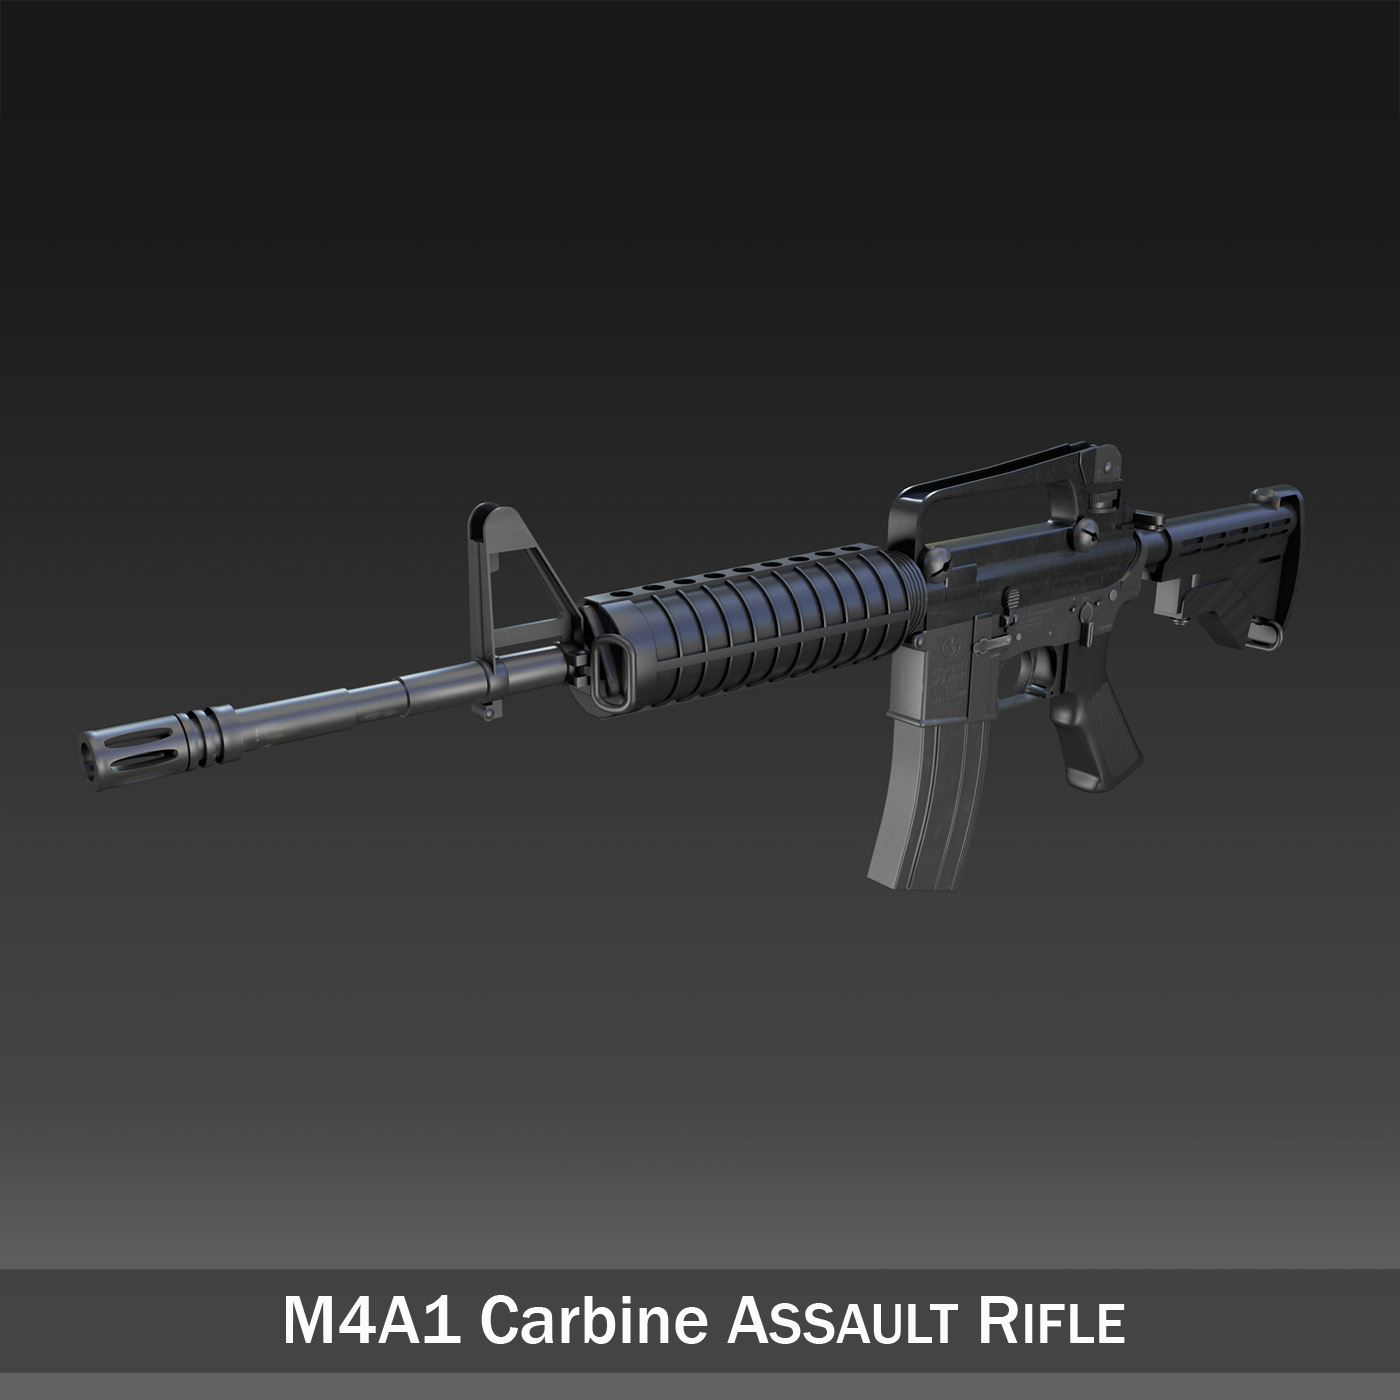 colt m4a1 carbine assault rifle 3d model 3ds fbx c4d lwo obj 187785